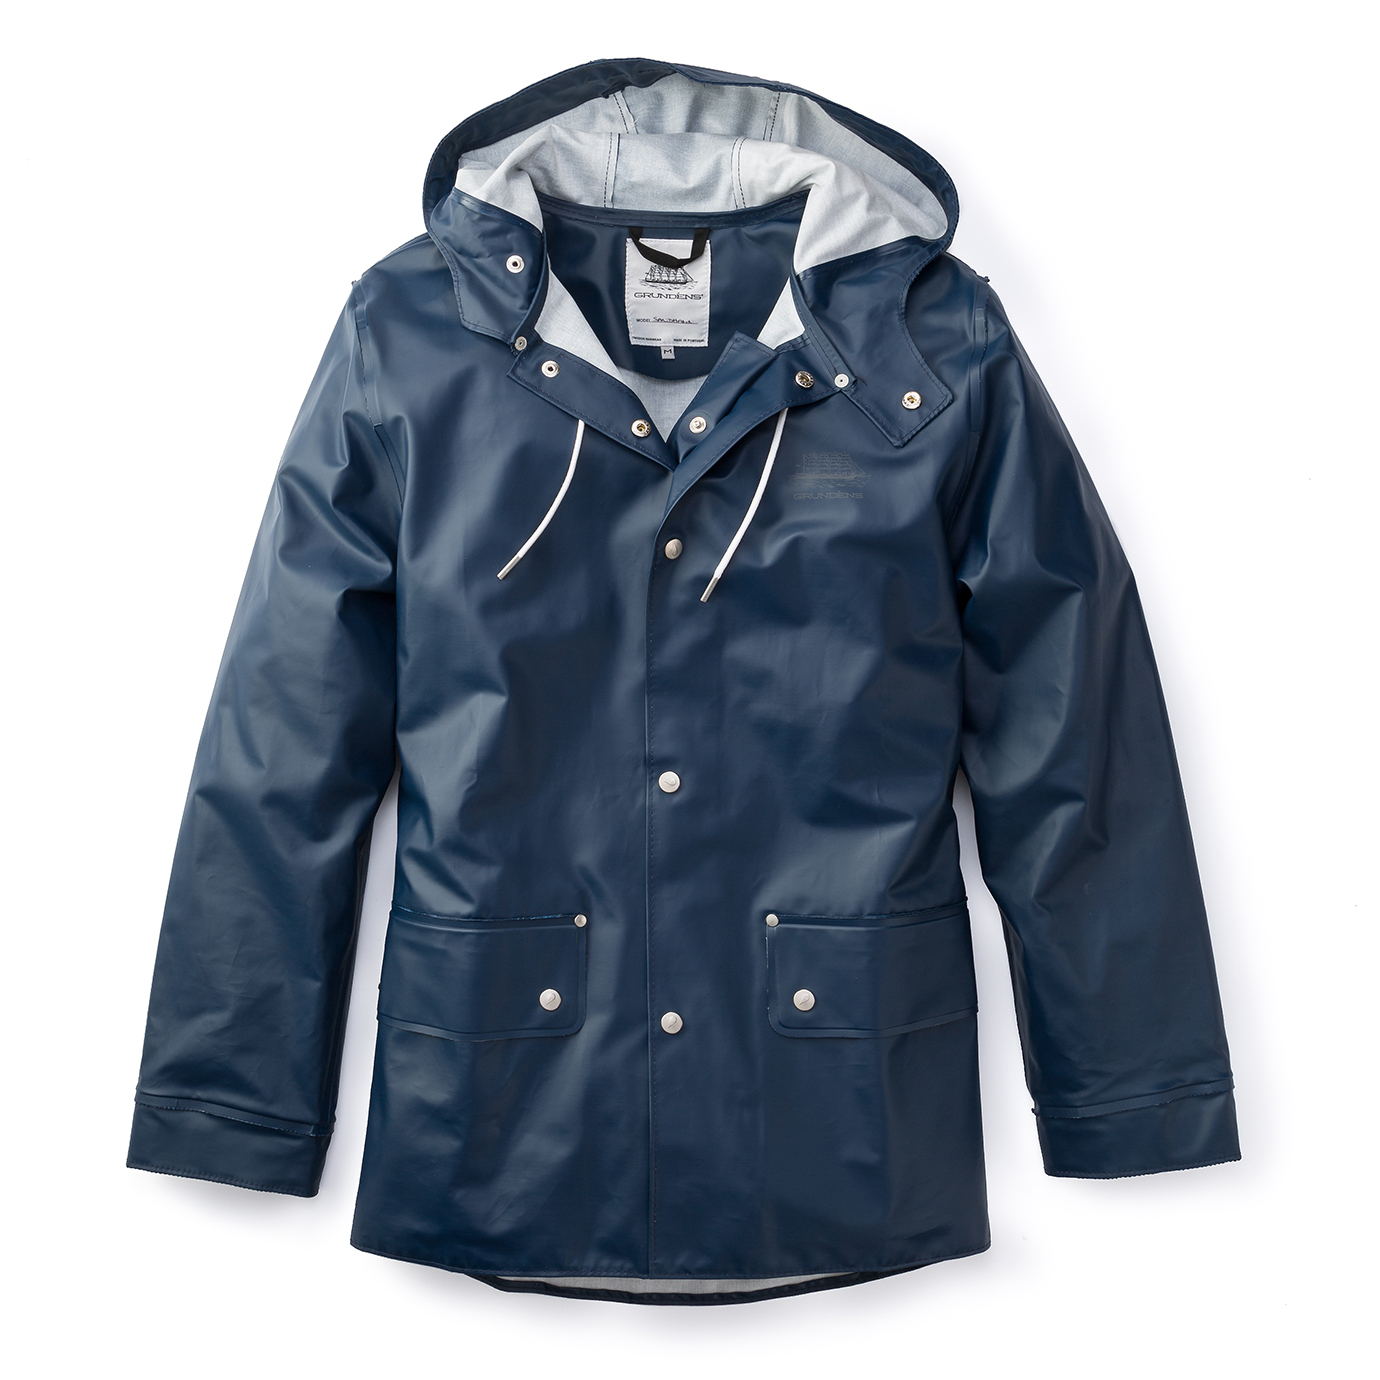 93ce8d02059 The 20 Coolest Rain Jackets for Men: Spring 2018